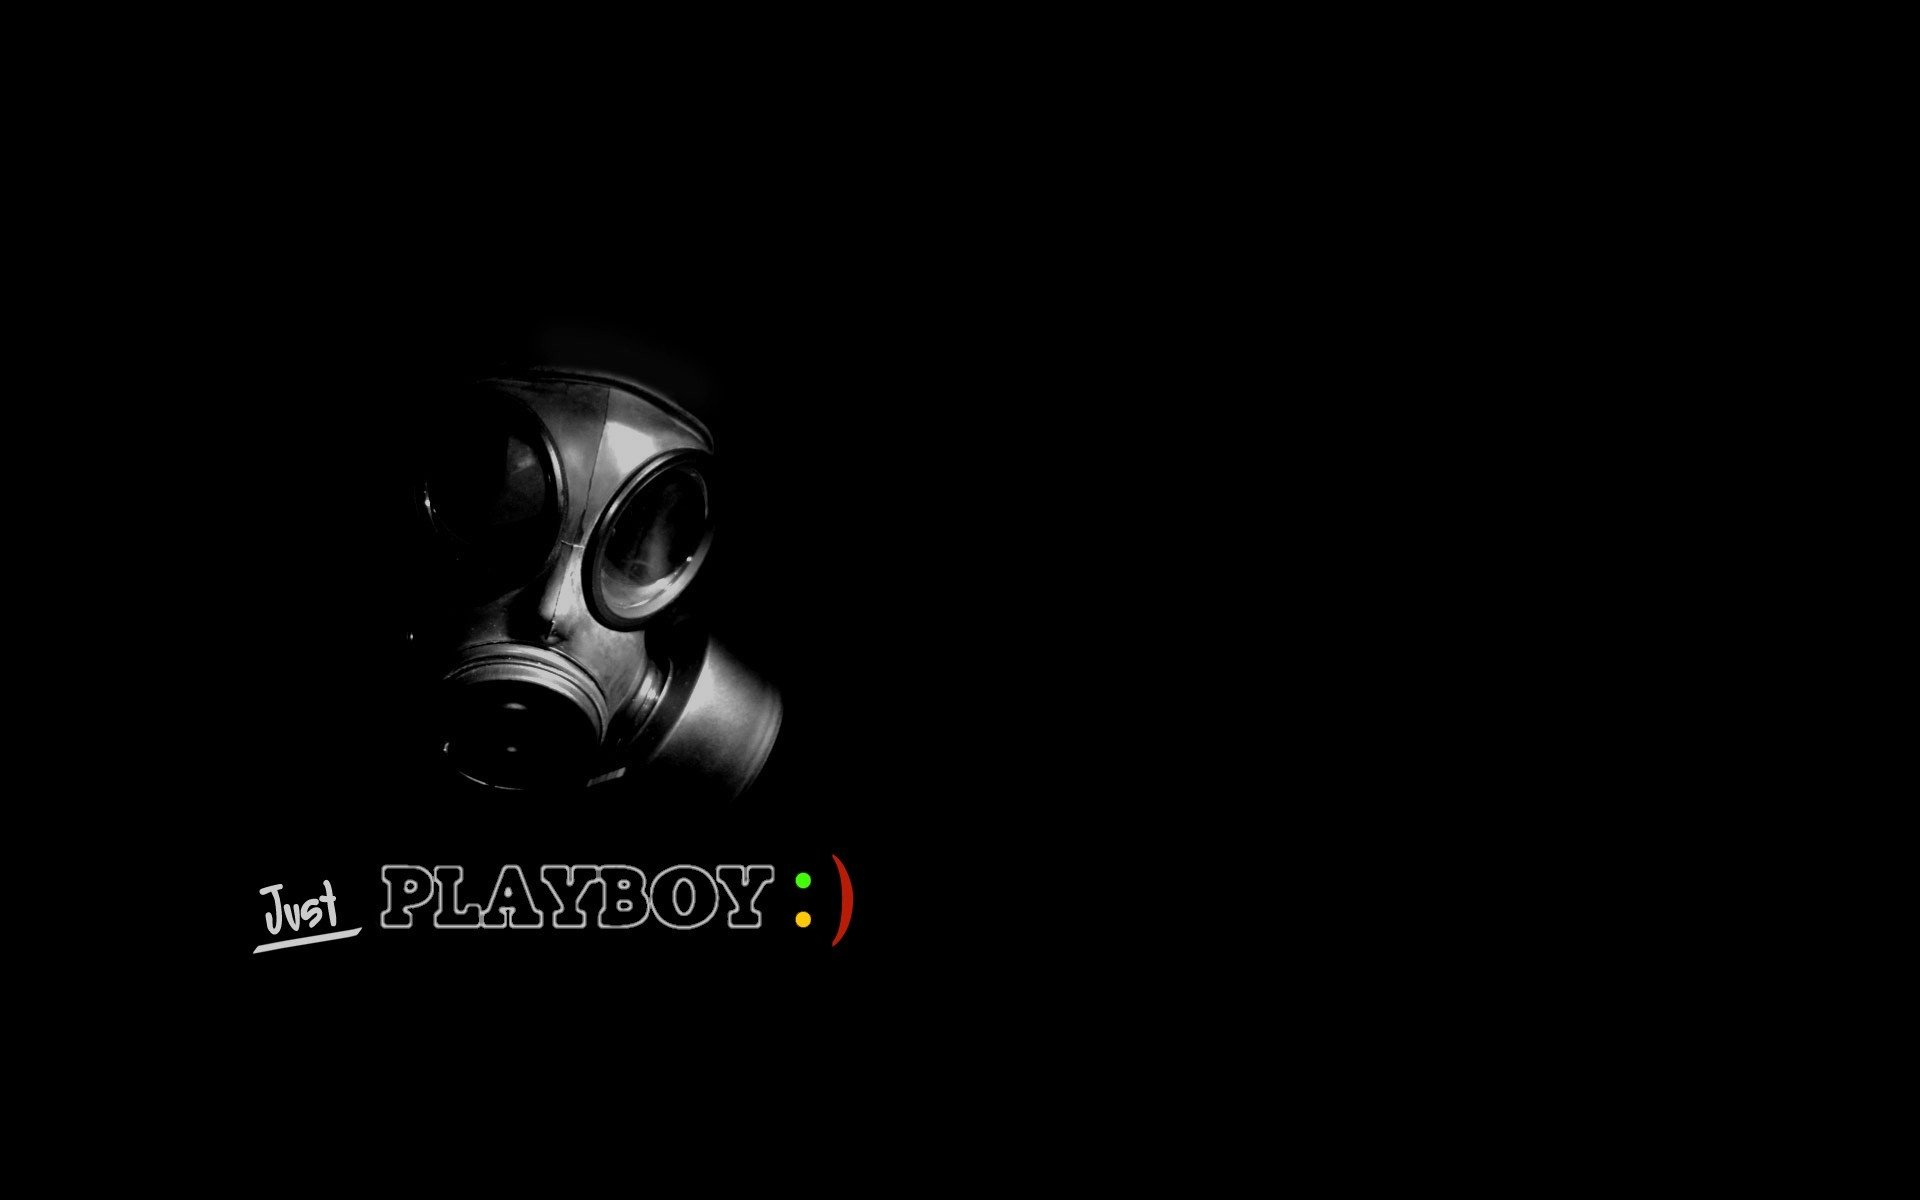 Anime Gamer Girl Red Head Wallpaper Gas Mask Full Hd Wallpaper And Background Image